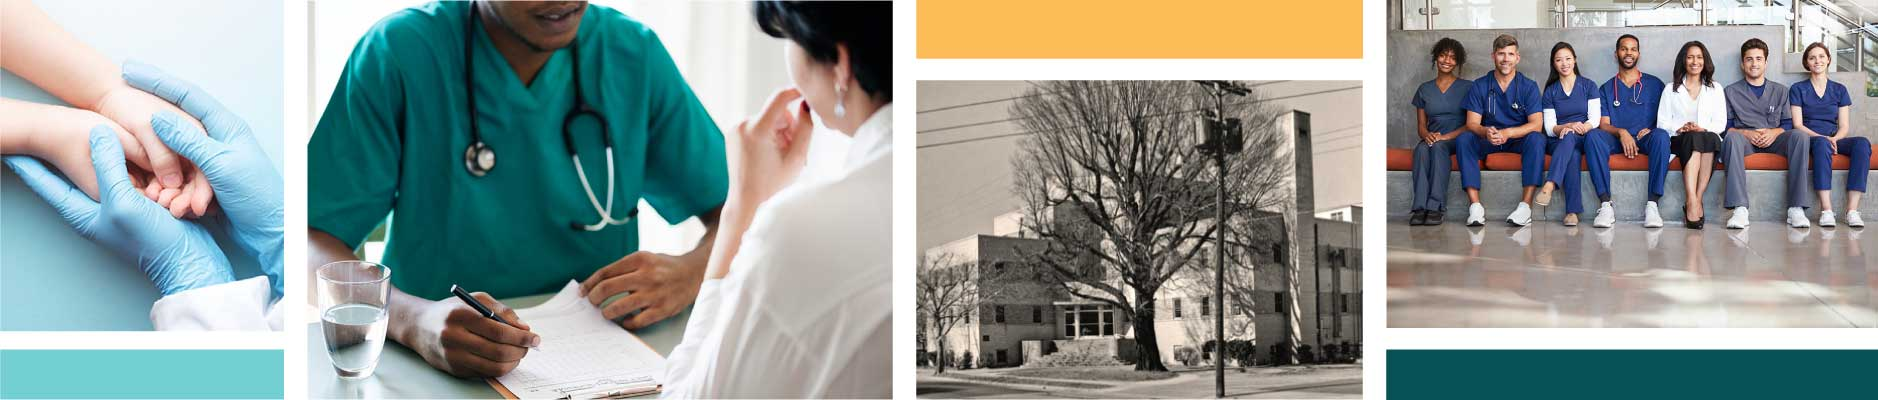 photo collage of healthcare providers and patients